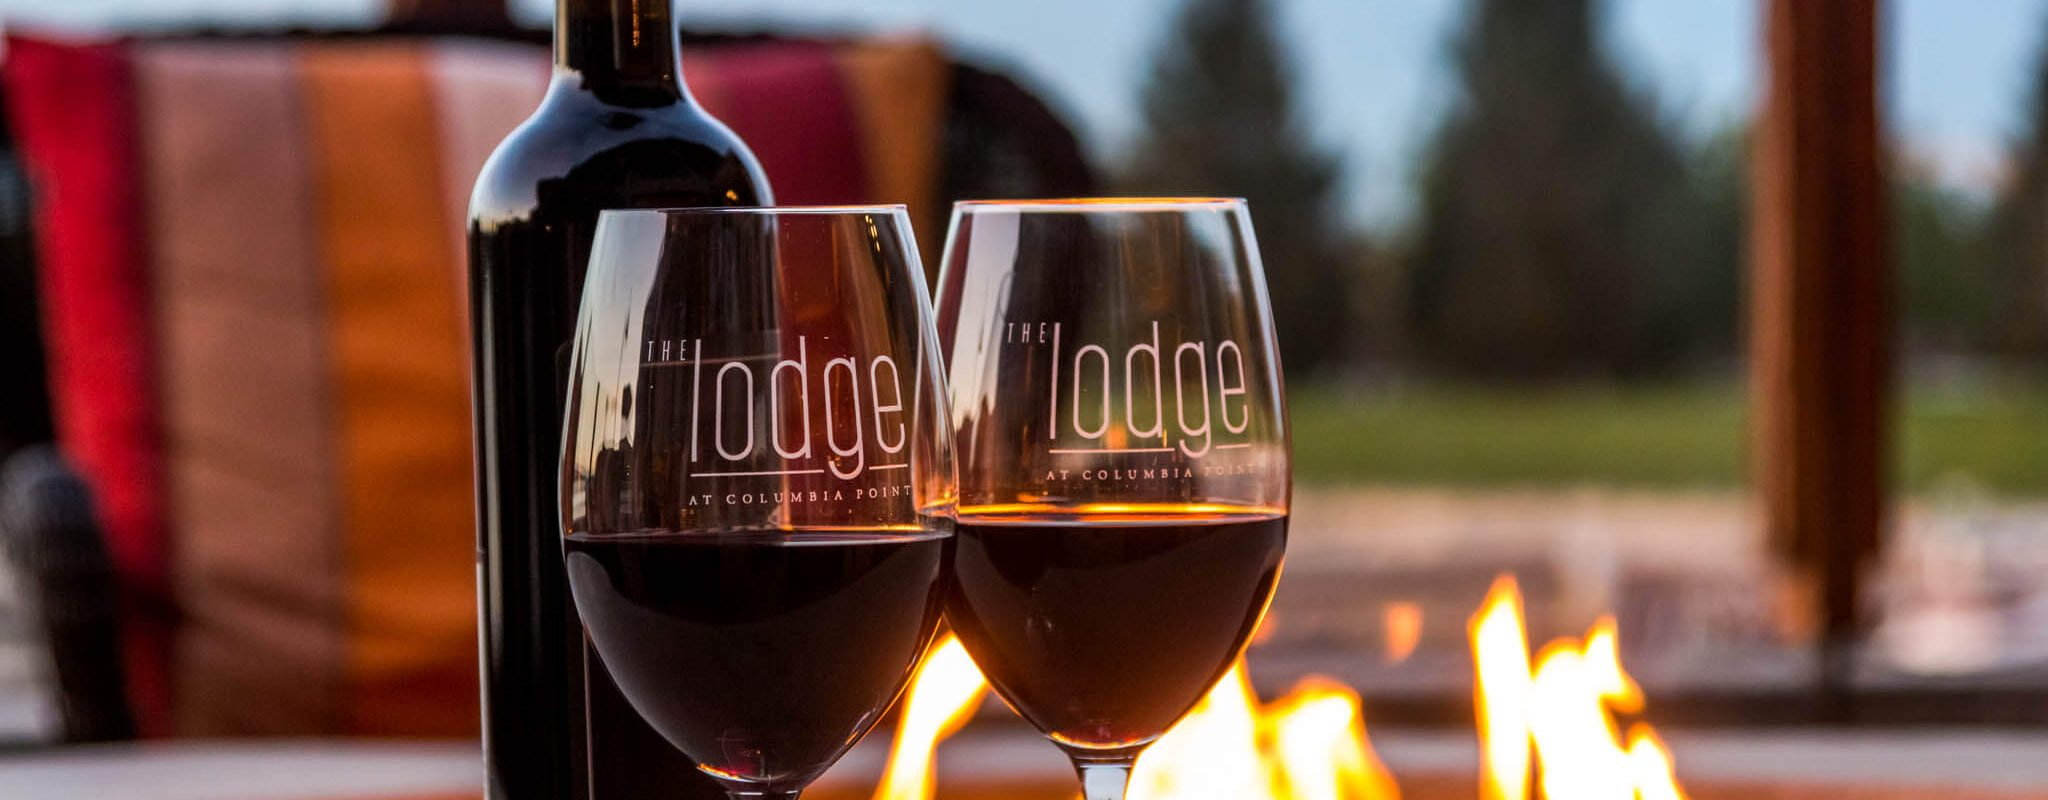 Fire and wine in Richland, Washington